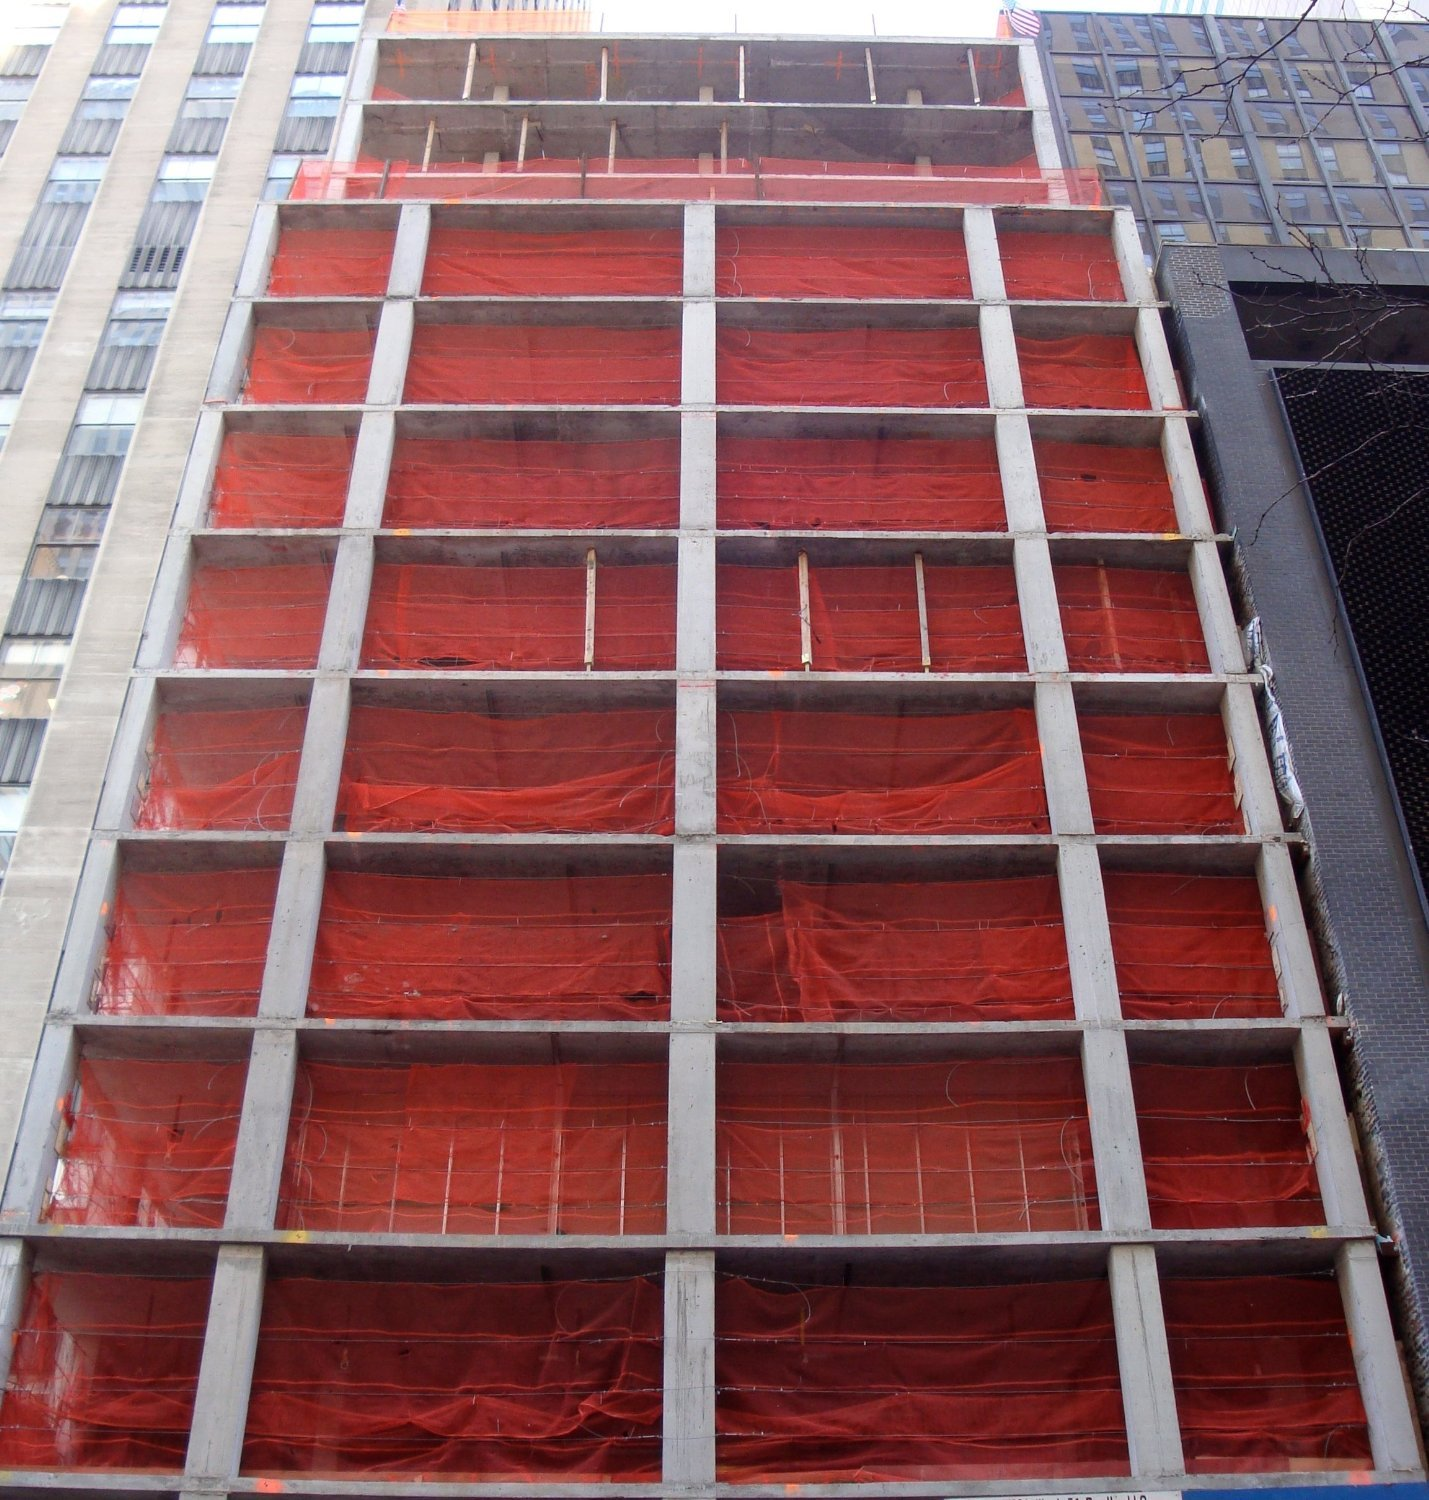 RK Heavy Duty 4-ft x 150-ft Fire Retardant Vertical Safety Netting, High Visibility Orange